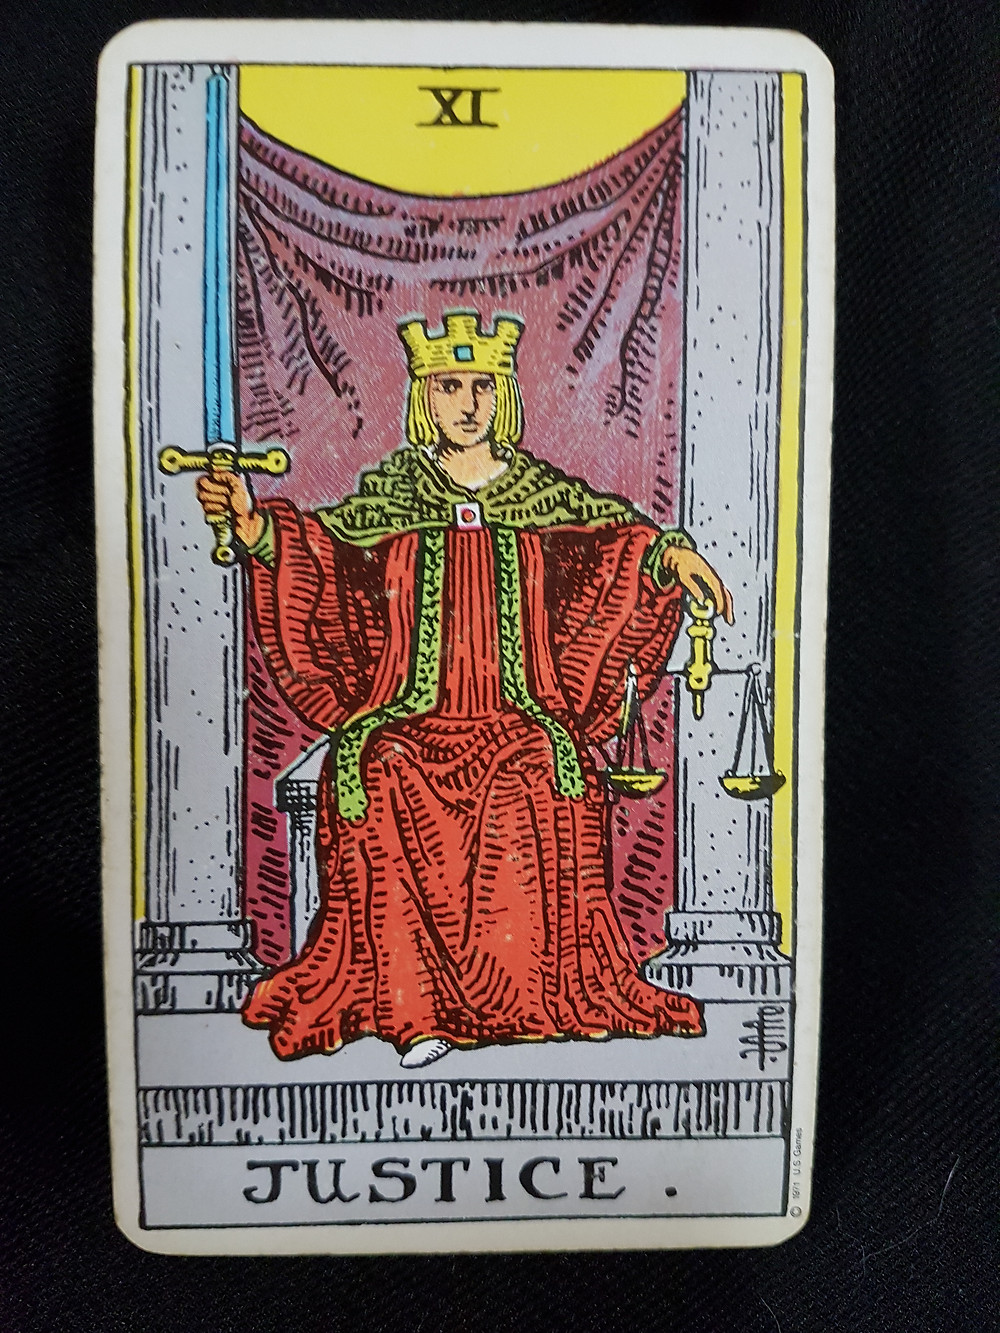 The Justice Card No 11 | lynsreadings.com